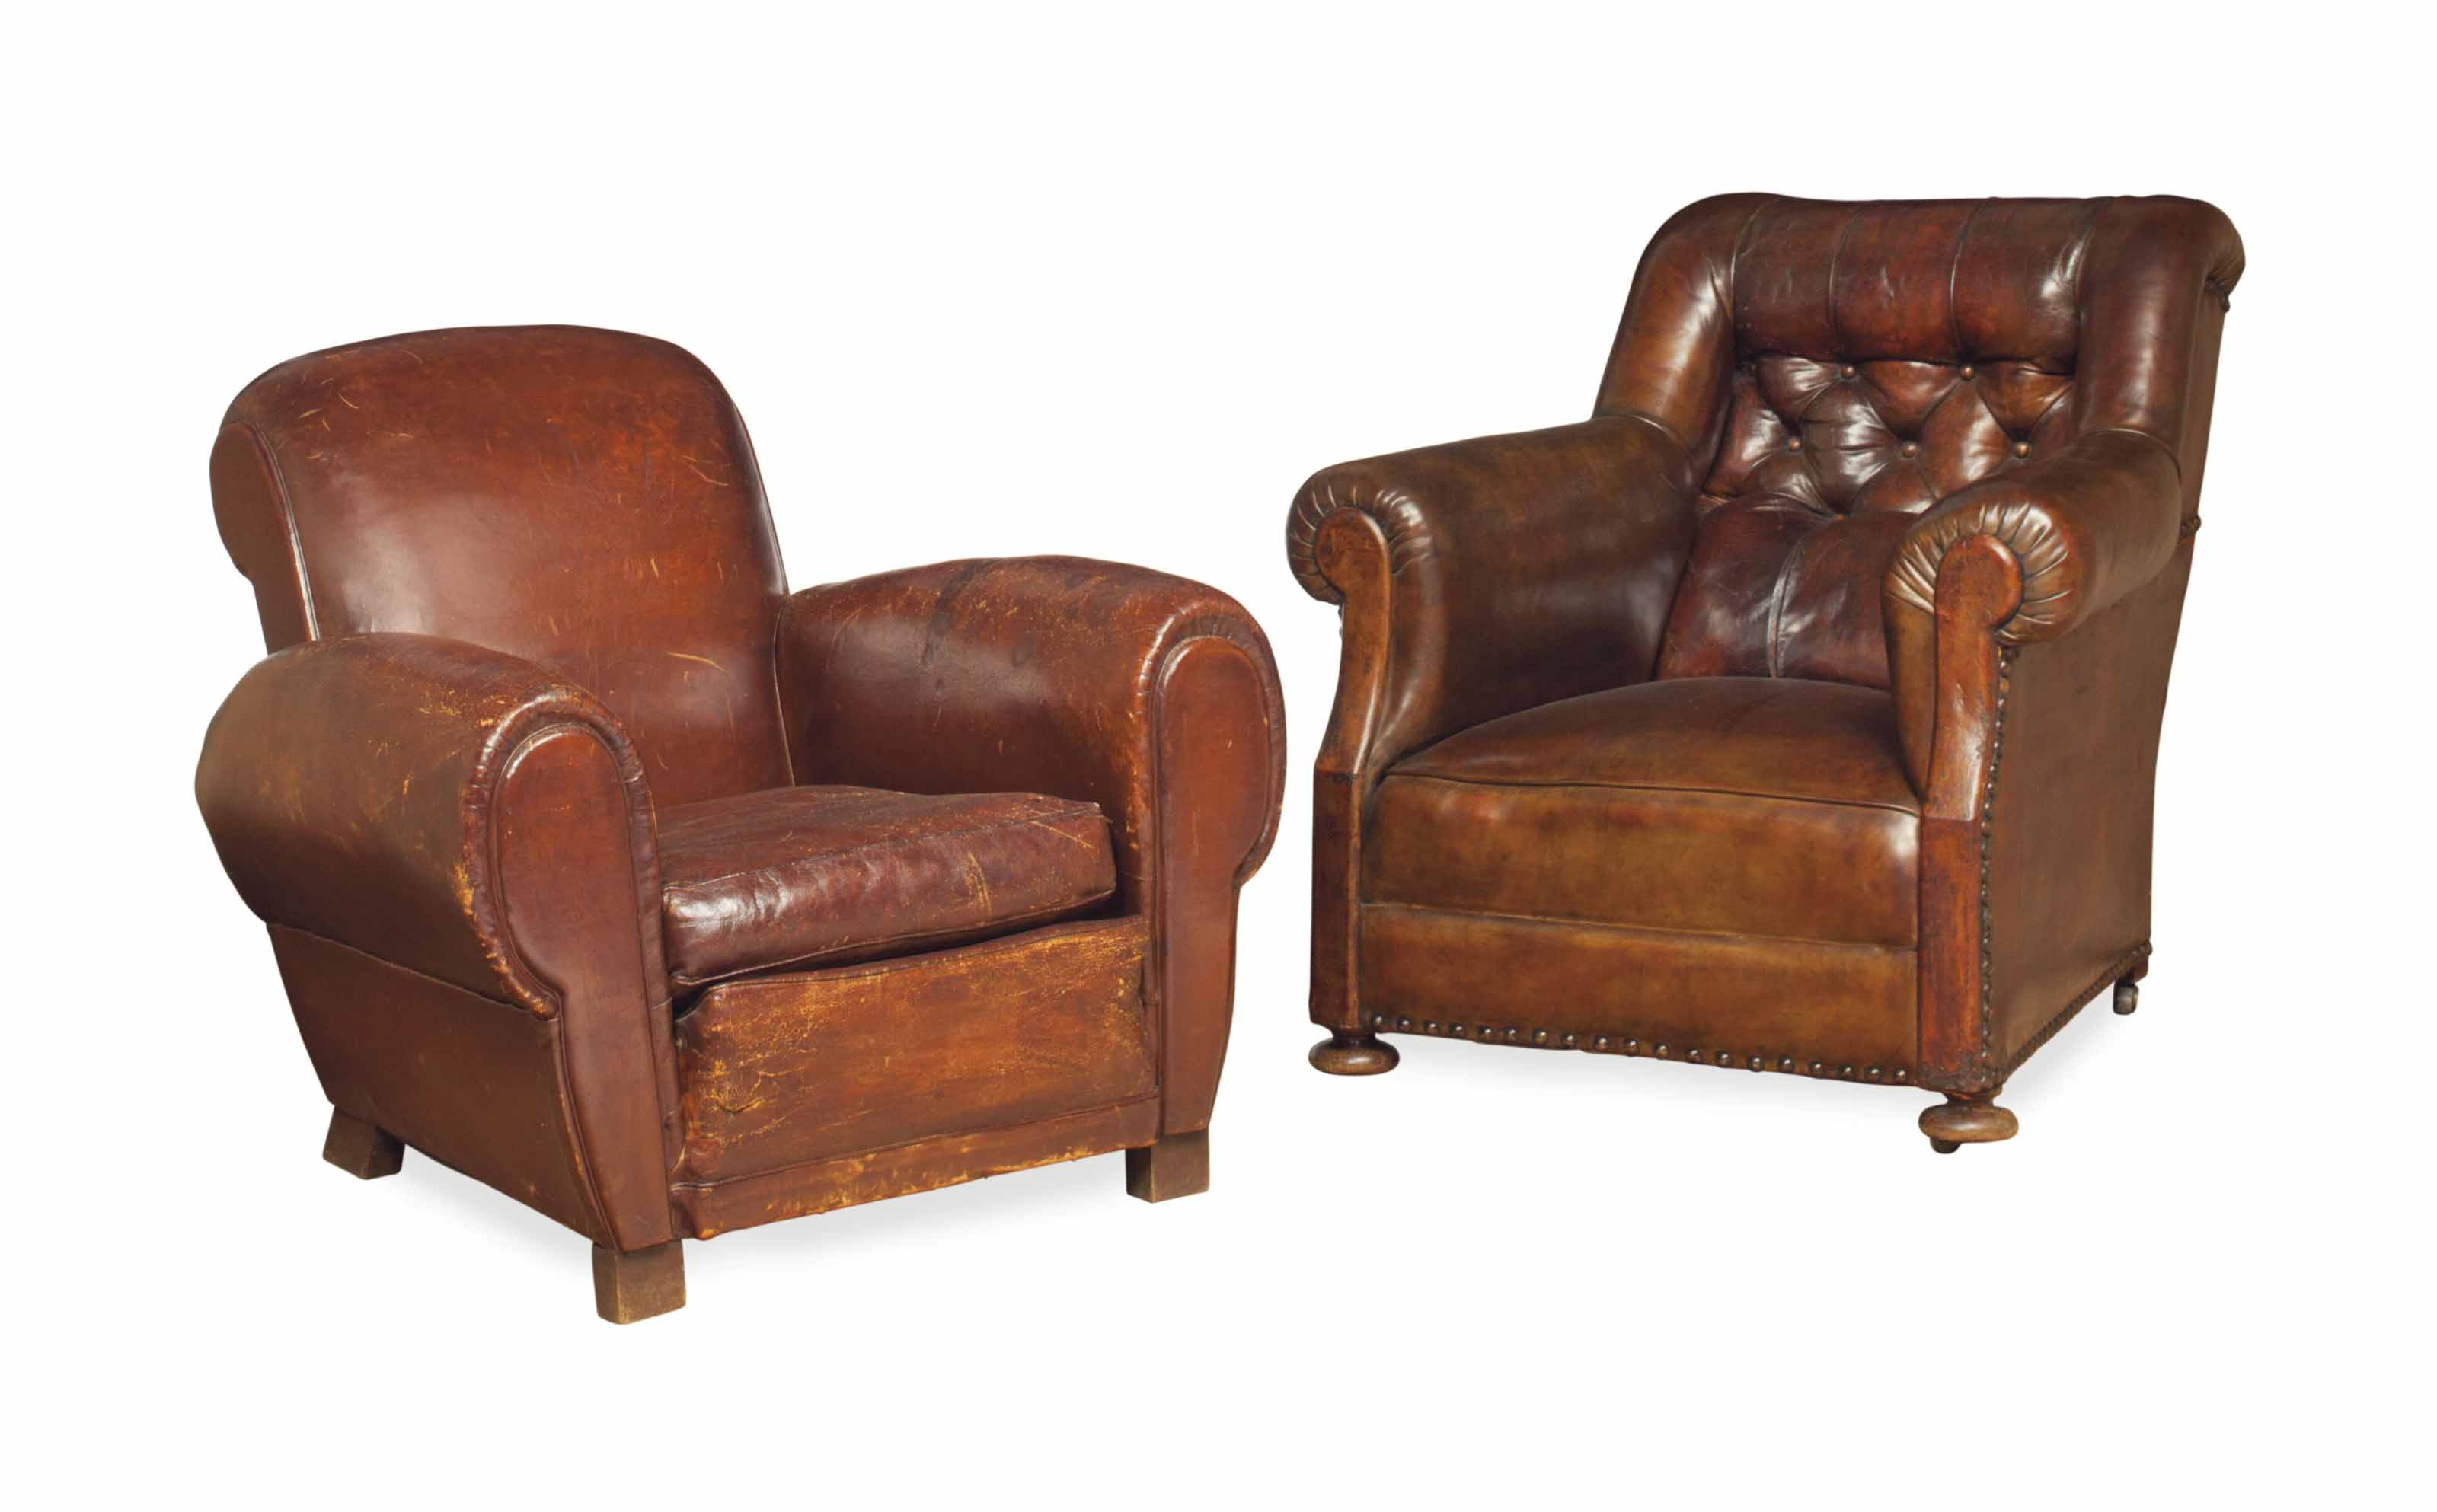 TWO LEATHER-UPHOLSTERED CLUB CHAIRS,